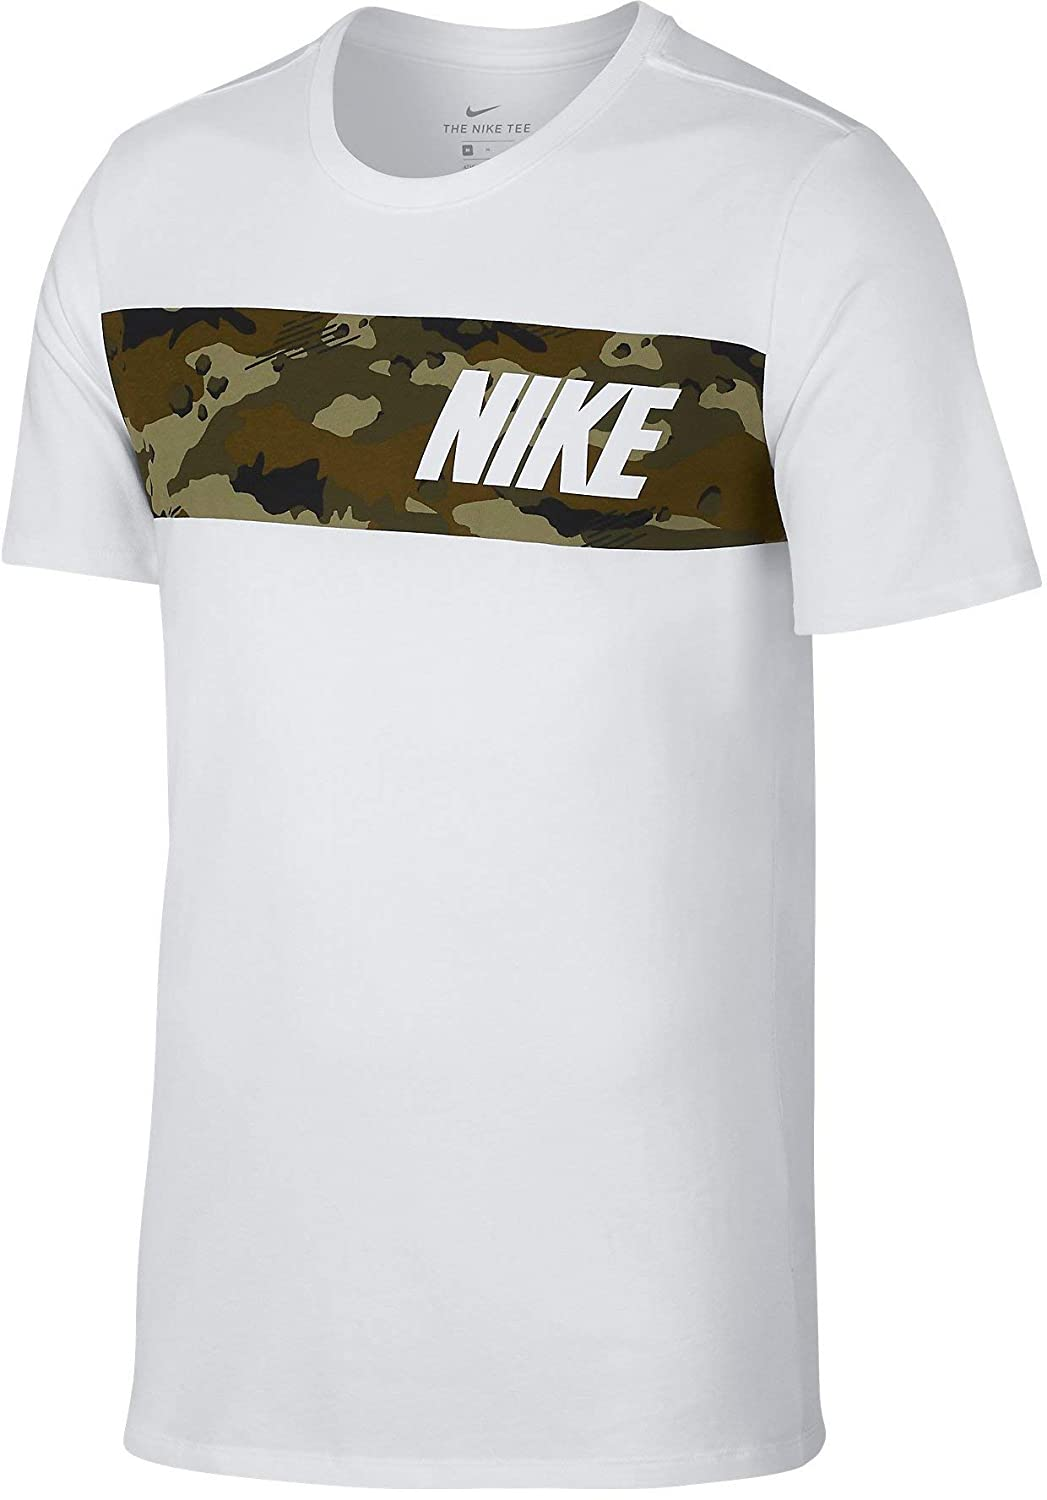 88adca67 Nike Dfc Block Camo T-Shirt Men's: Amazon.co.uk: Sports & Outdoors